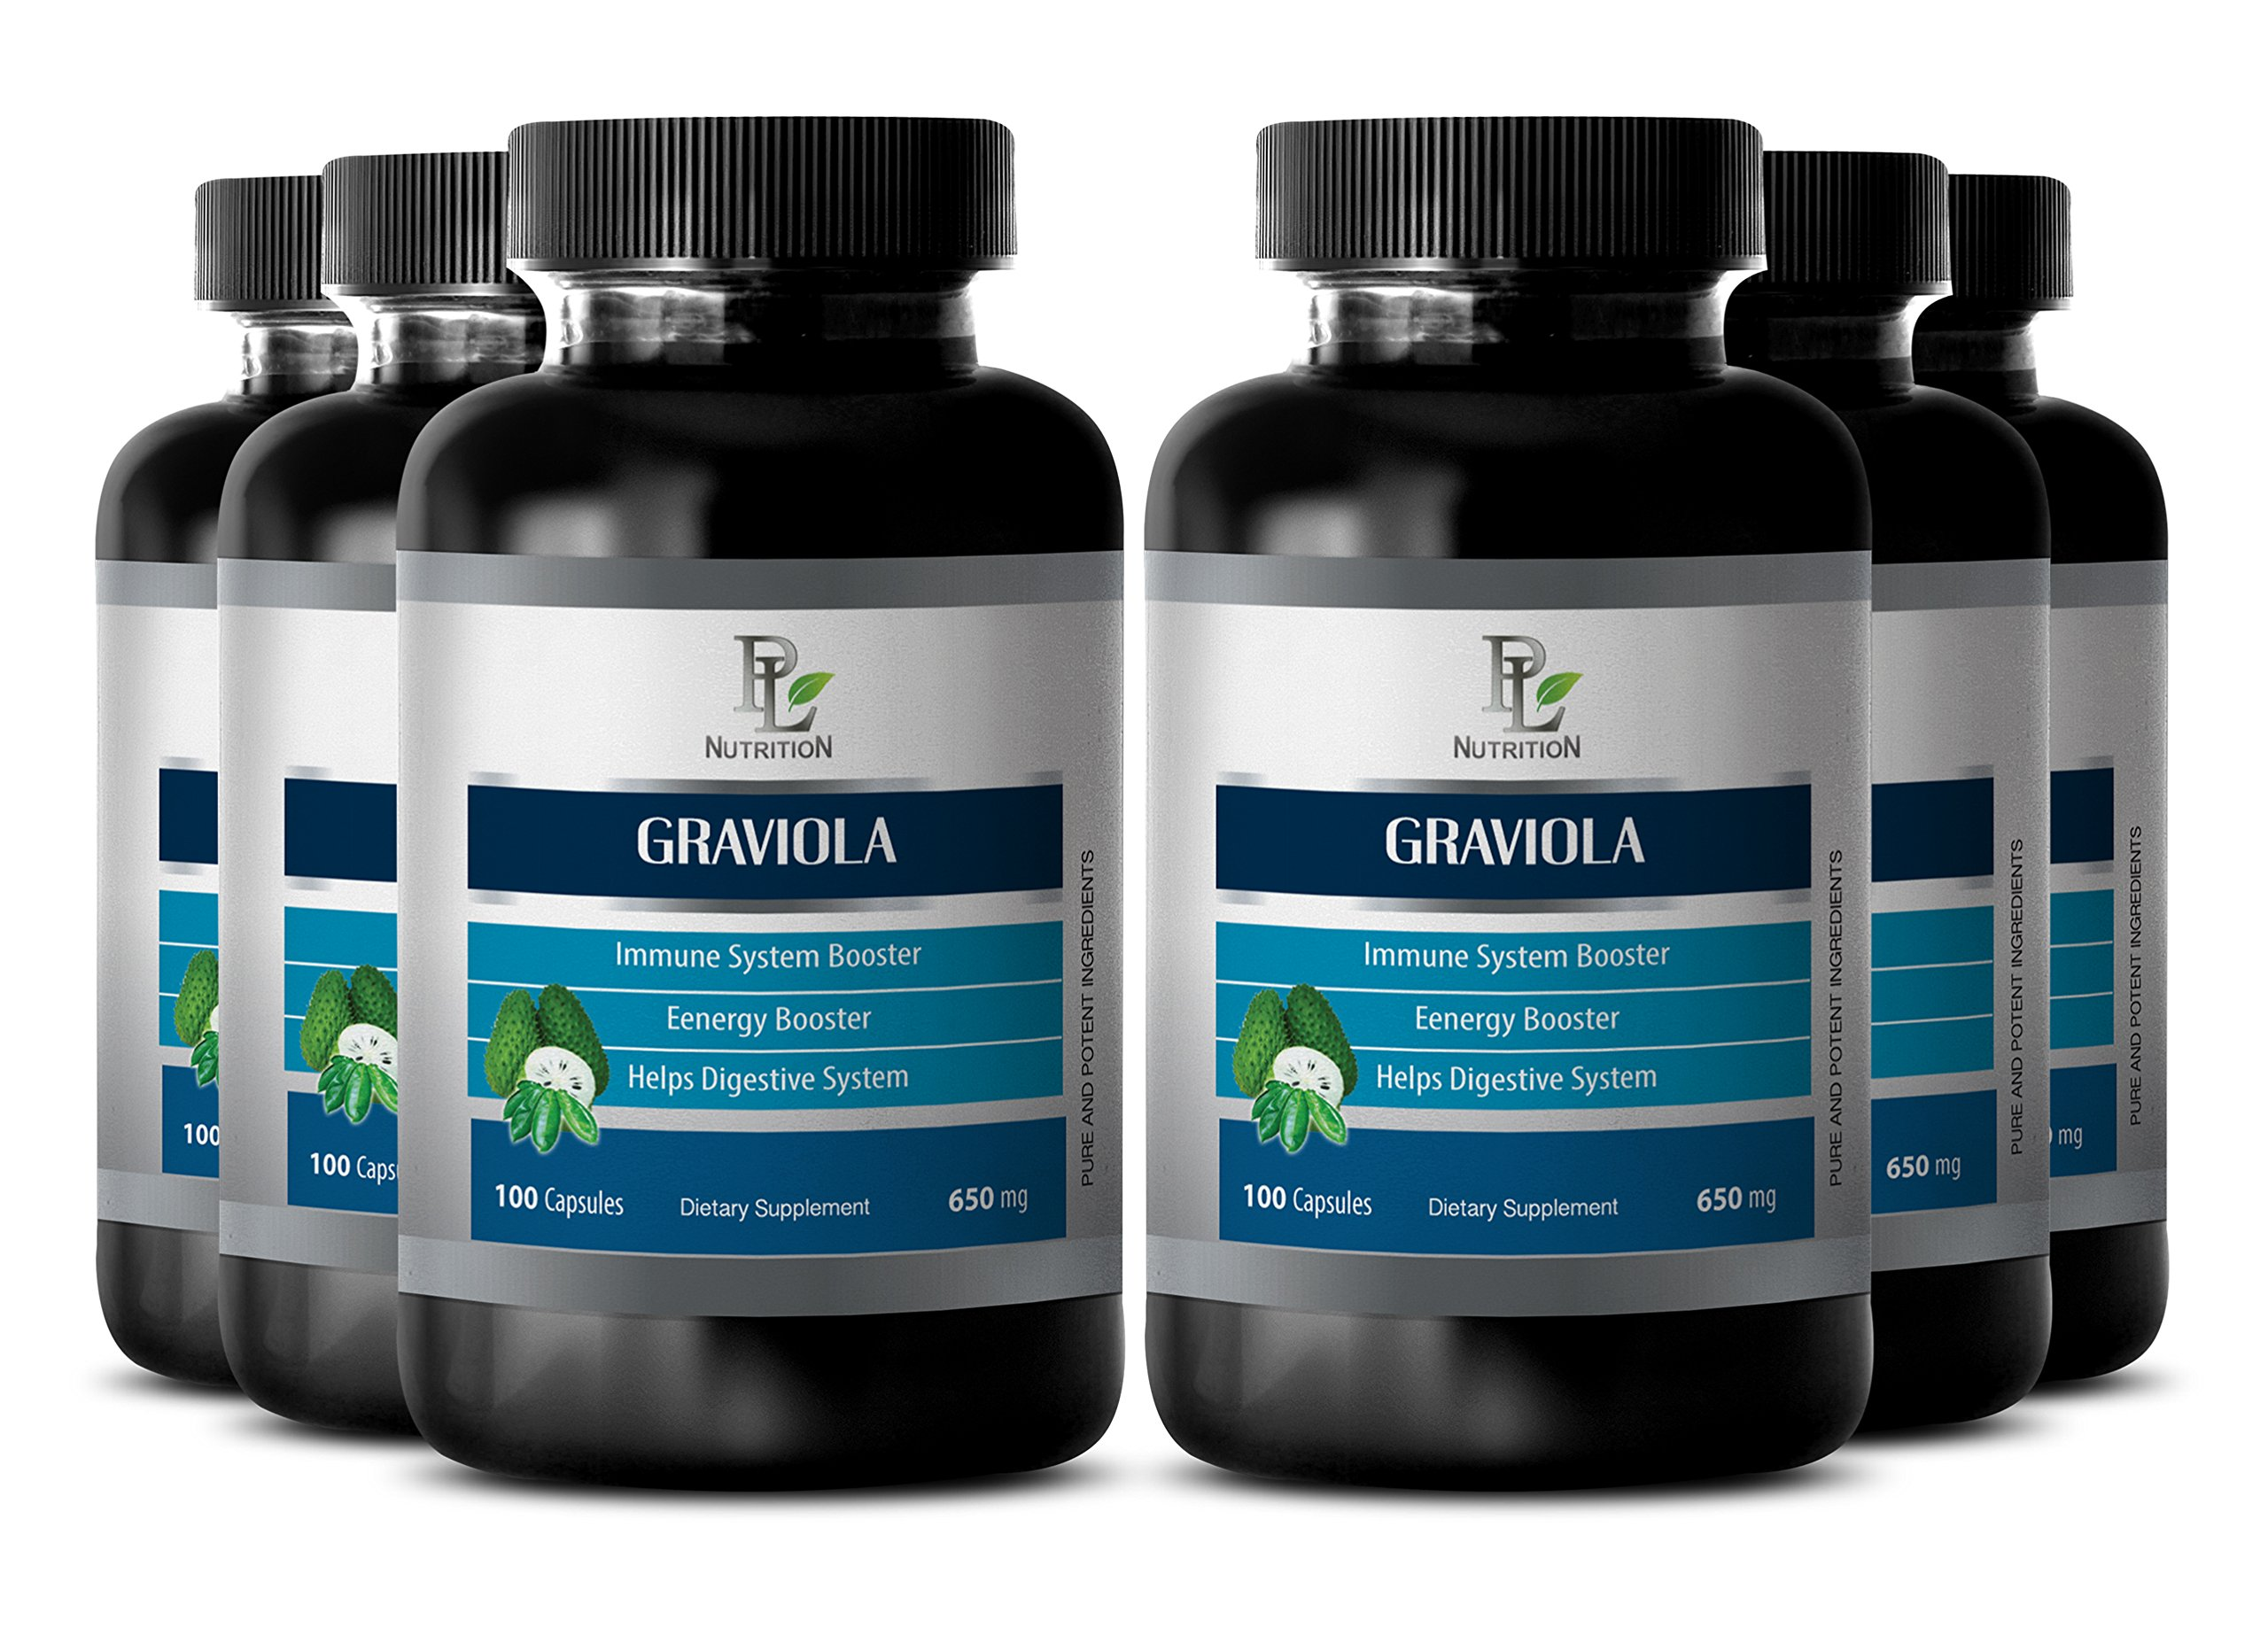 Vitamins for women - GRAVIOLA EXTRACT 650 Mg - Colon health capsules - 6 Bottles 600 Capsules